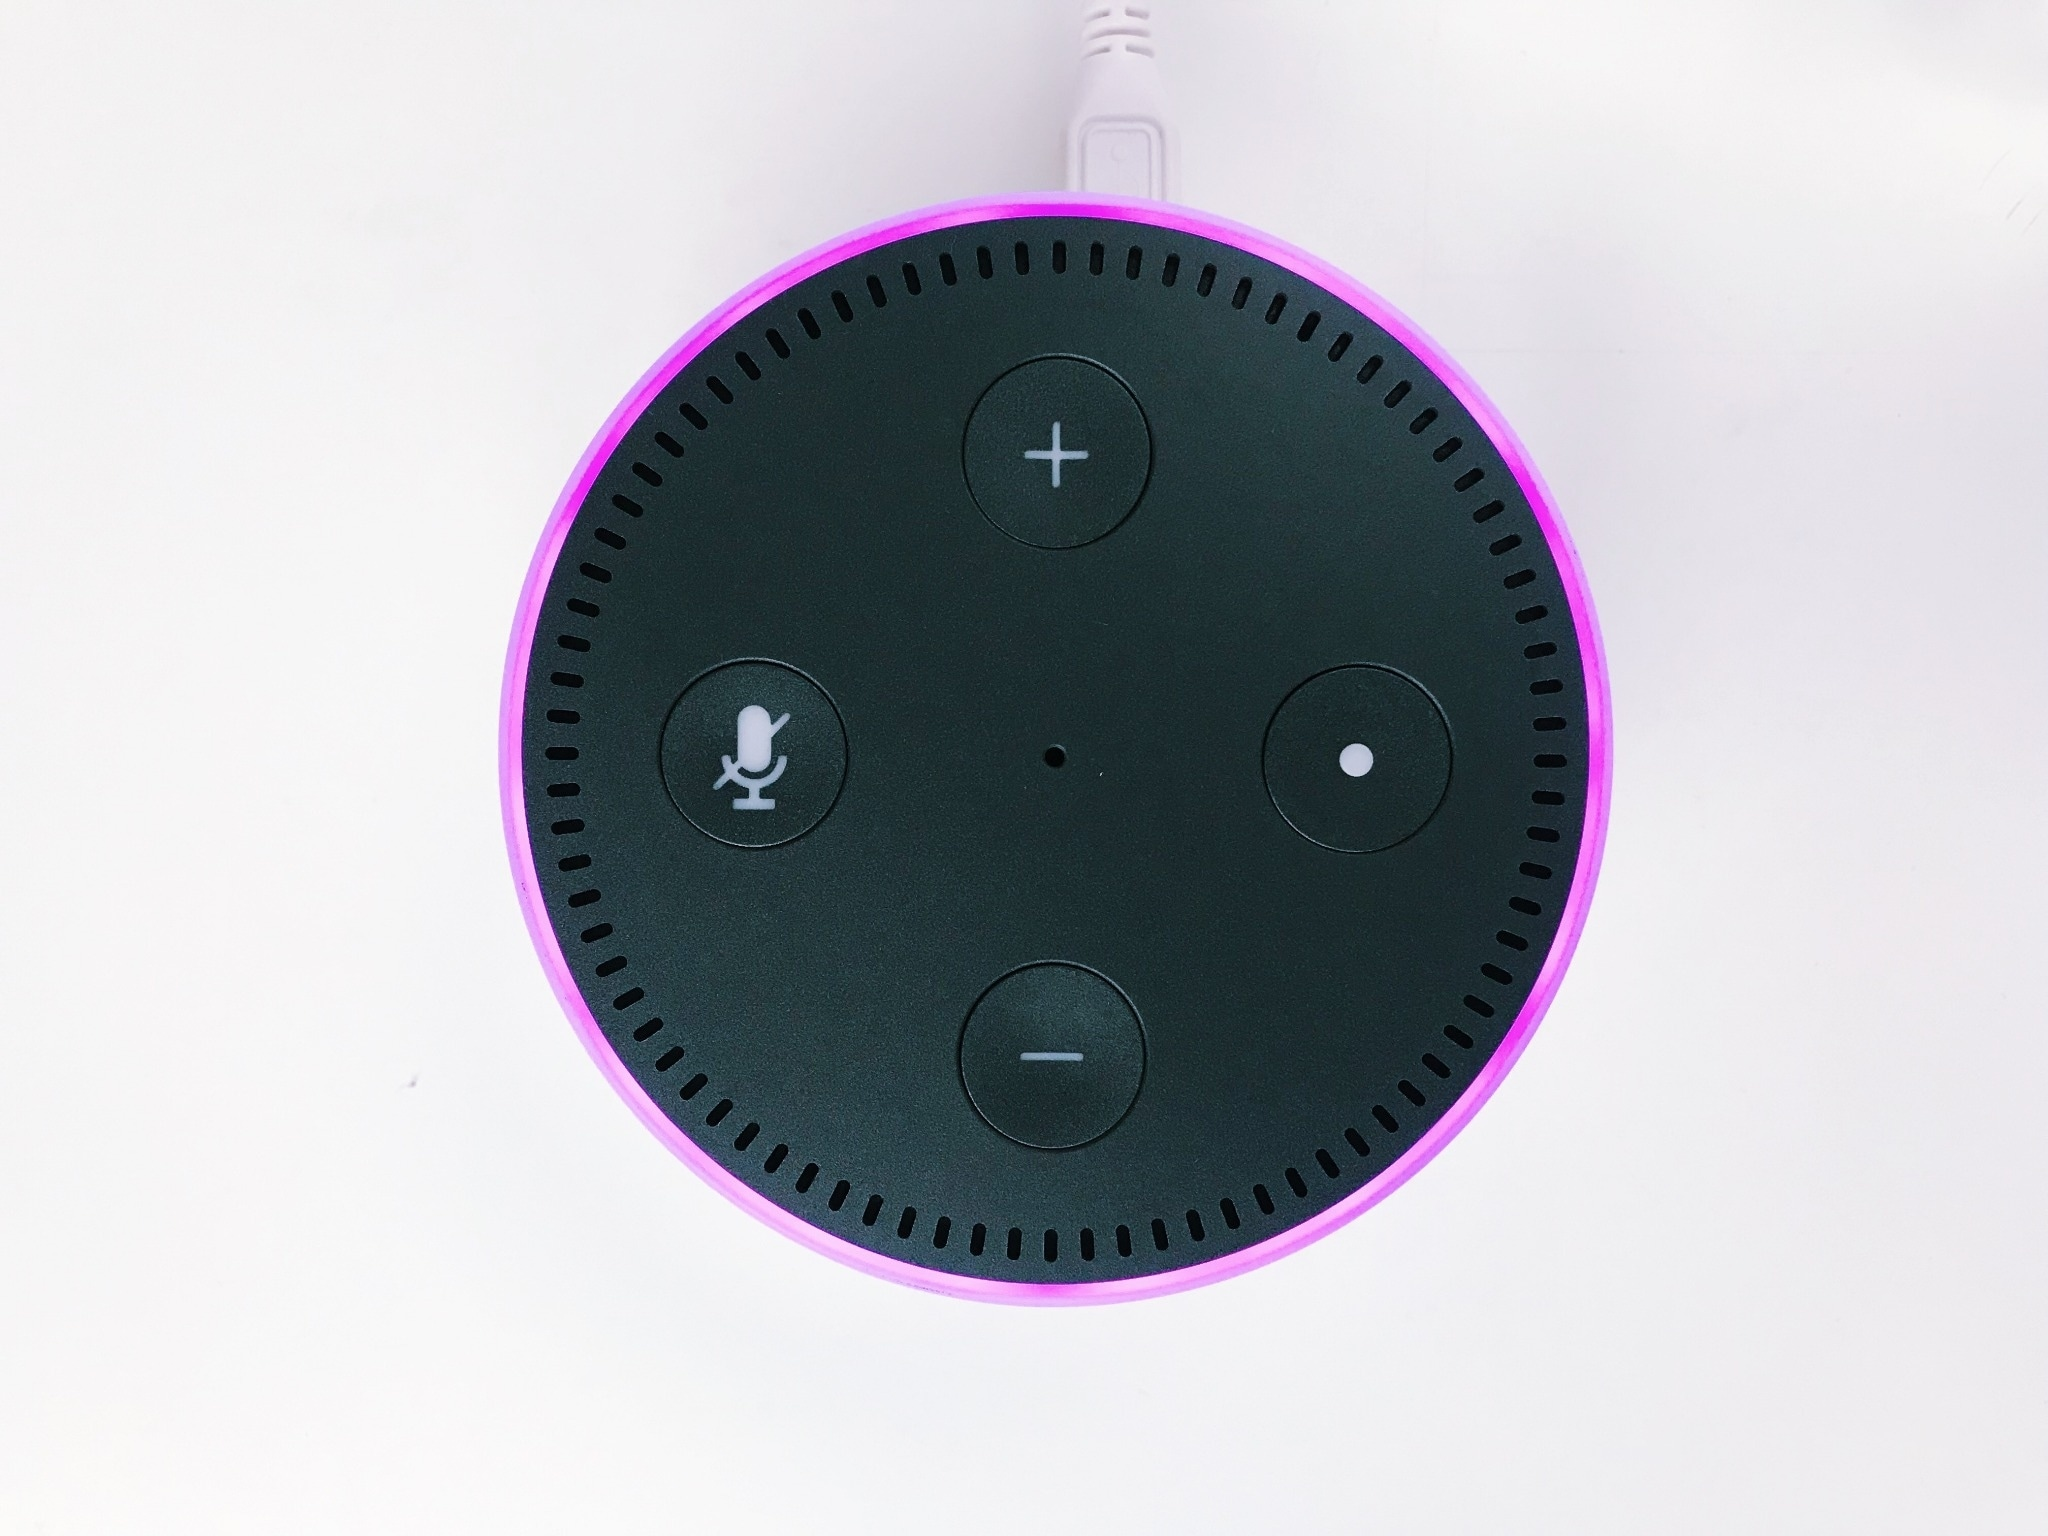 How to Search for Promo Codes with Amazon's Alexa